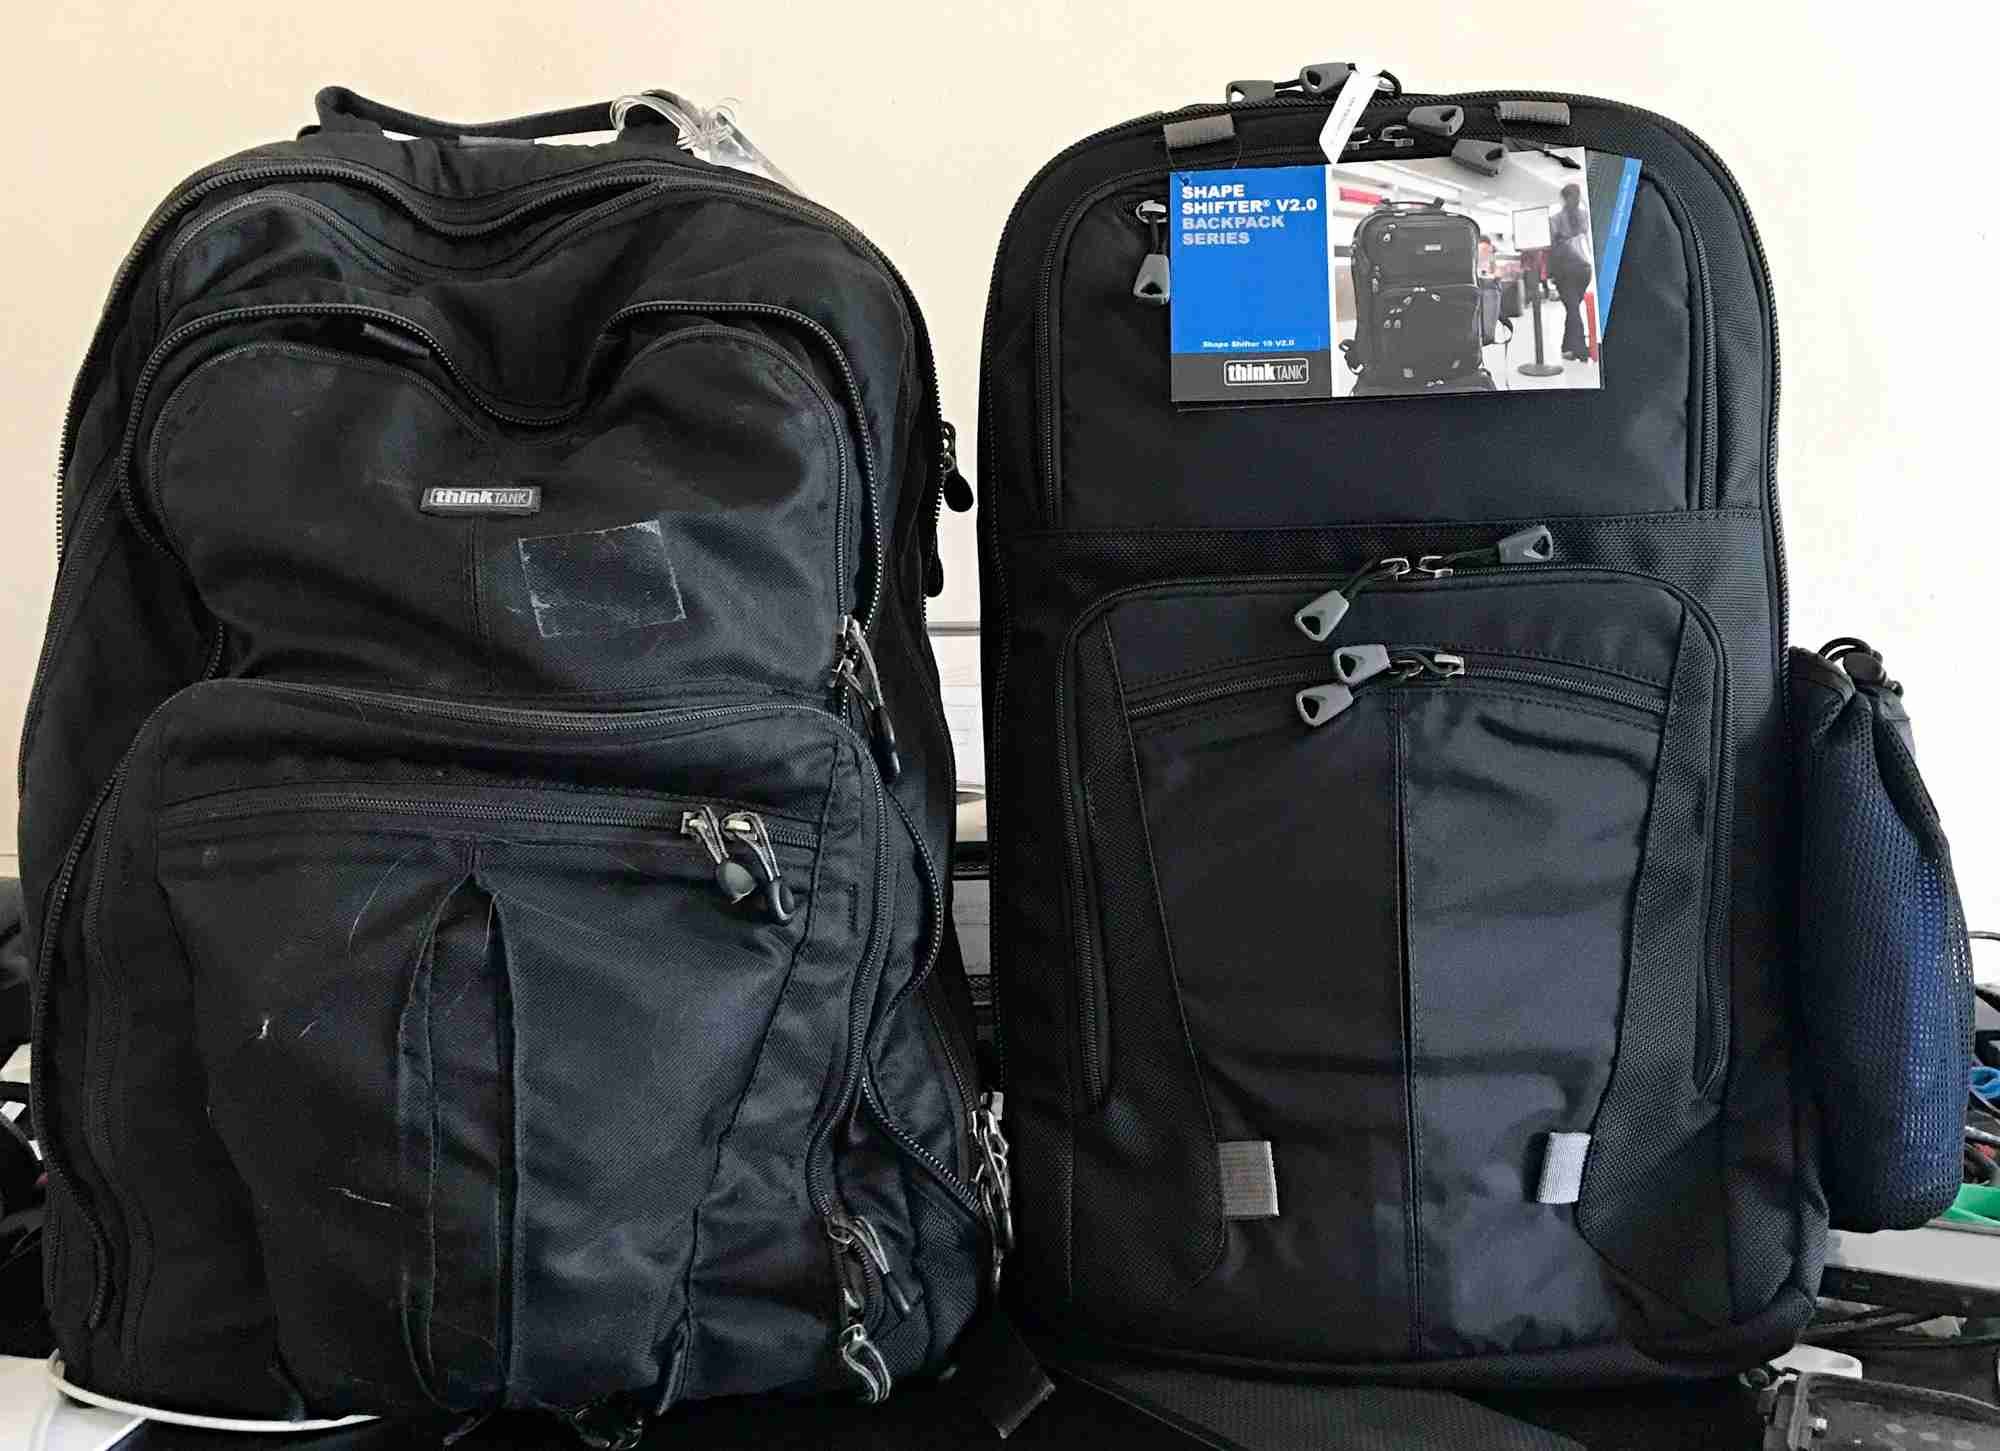 After seven years of daily service, I finally retired my first Think Tank Shape Shifter backpack, left, replacing it with the new version 2.0, right. I typically carry my most critical gear and laptop inside. Image courtesy of the author.